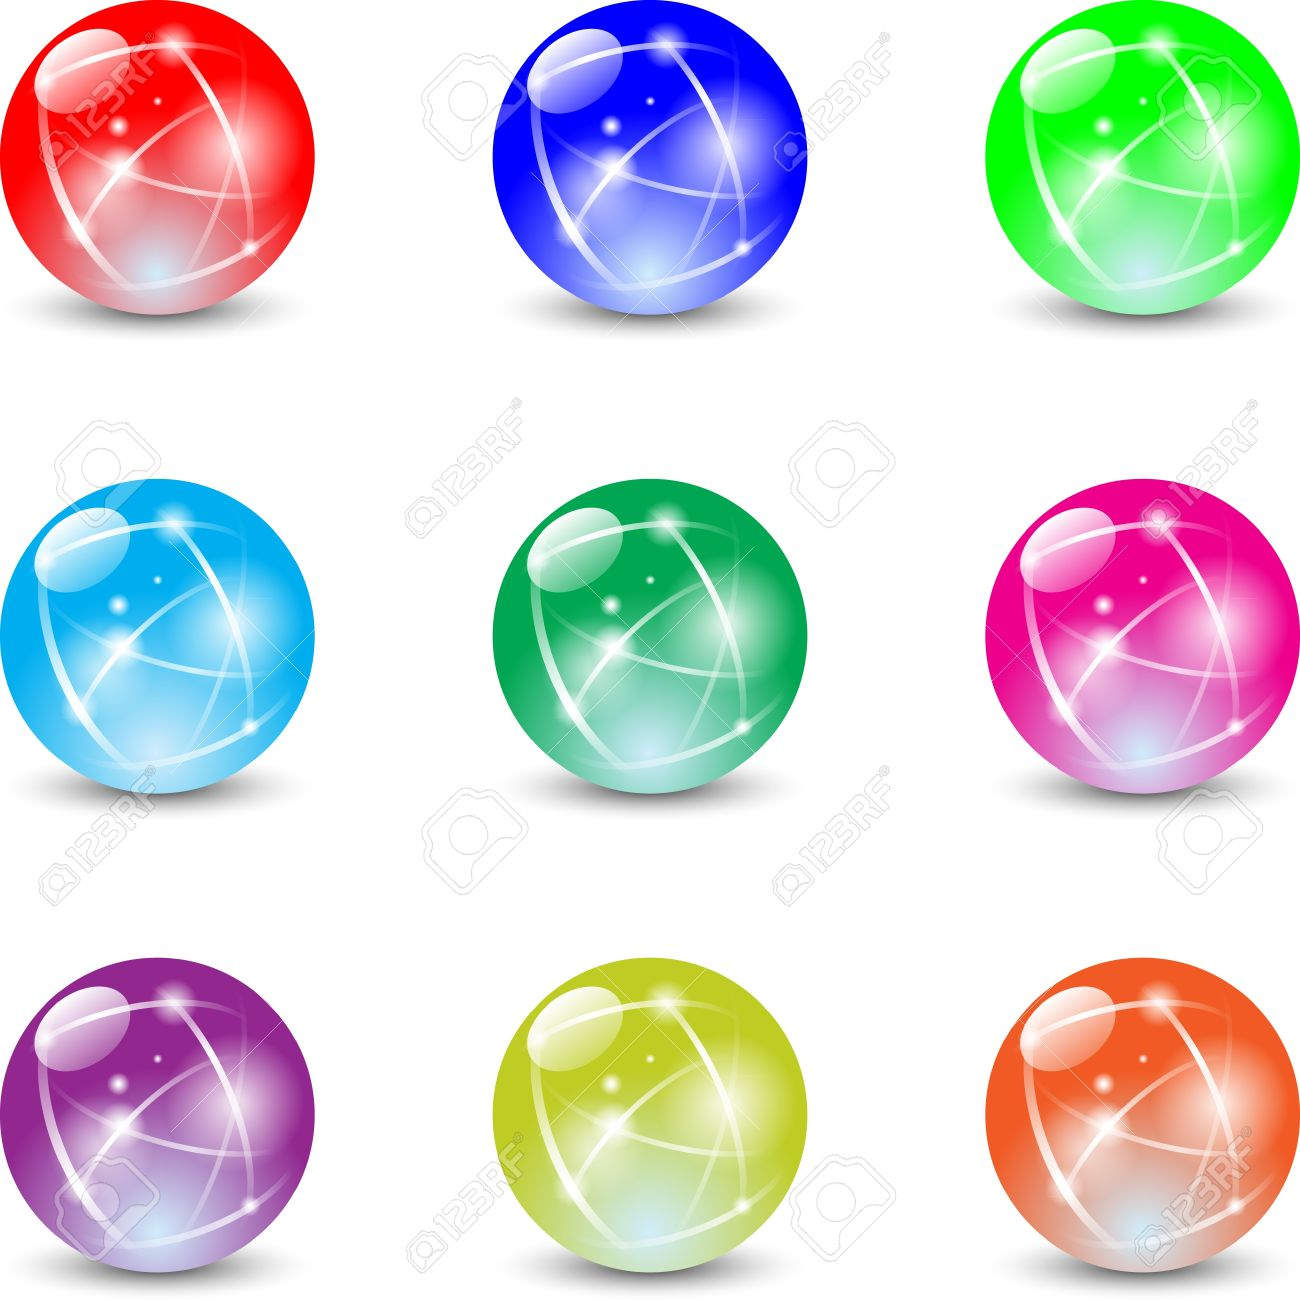 Marbles Royalty Free Cliparts, Vectors, And Stock Illustration.